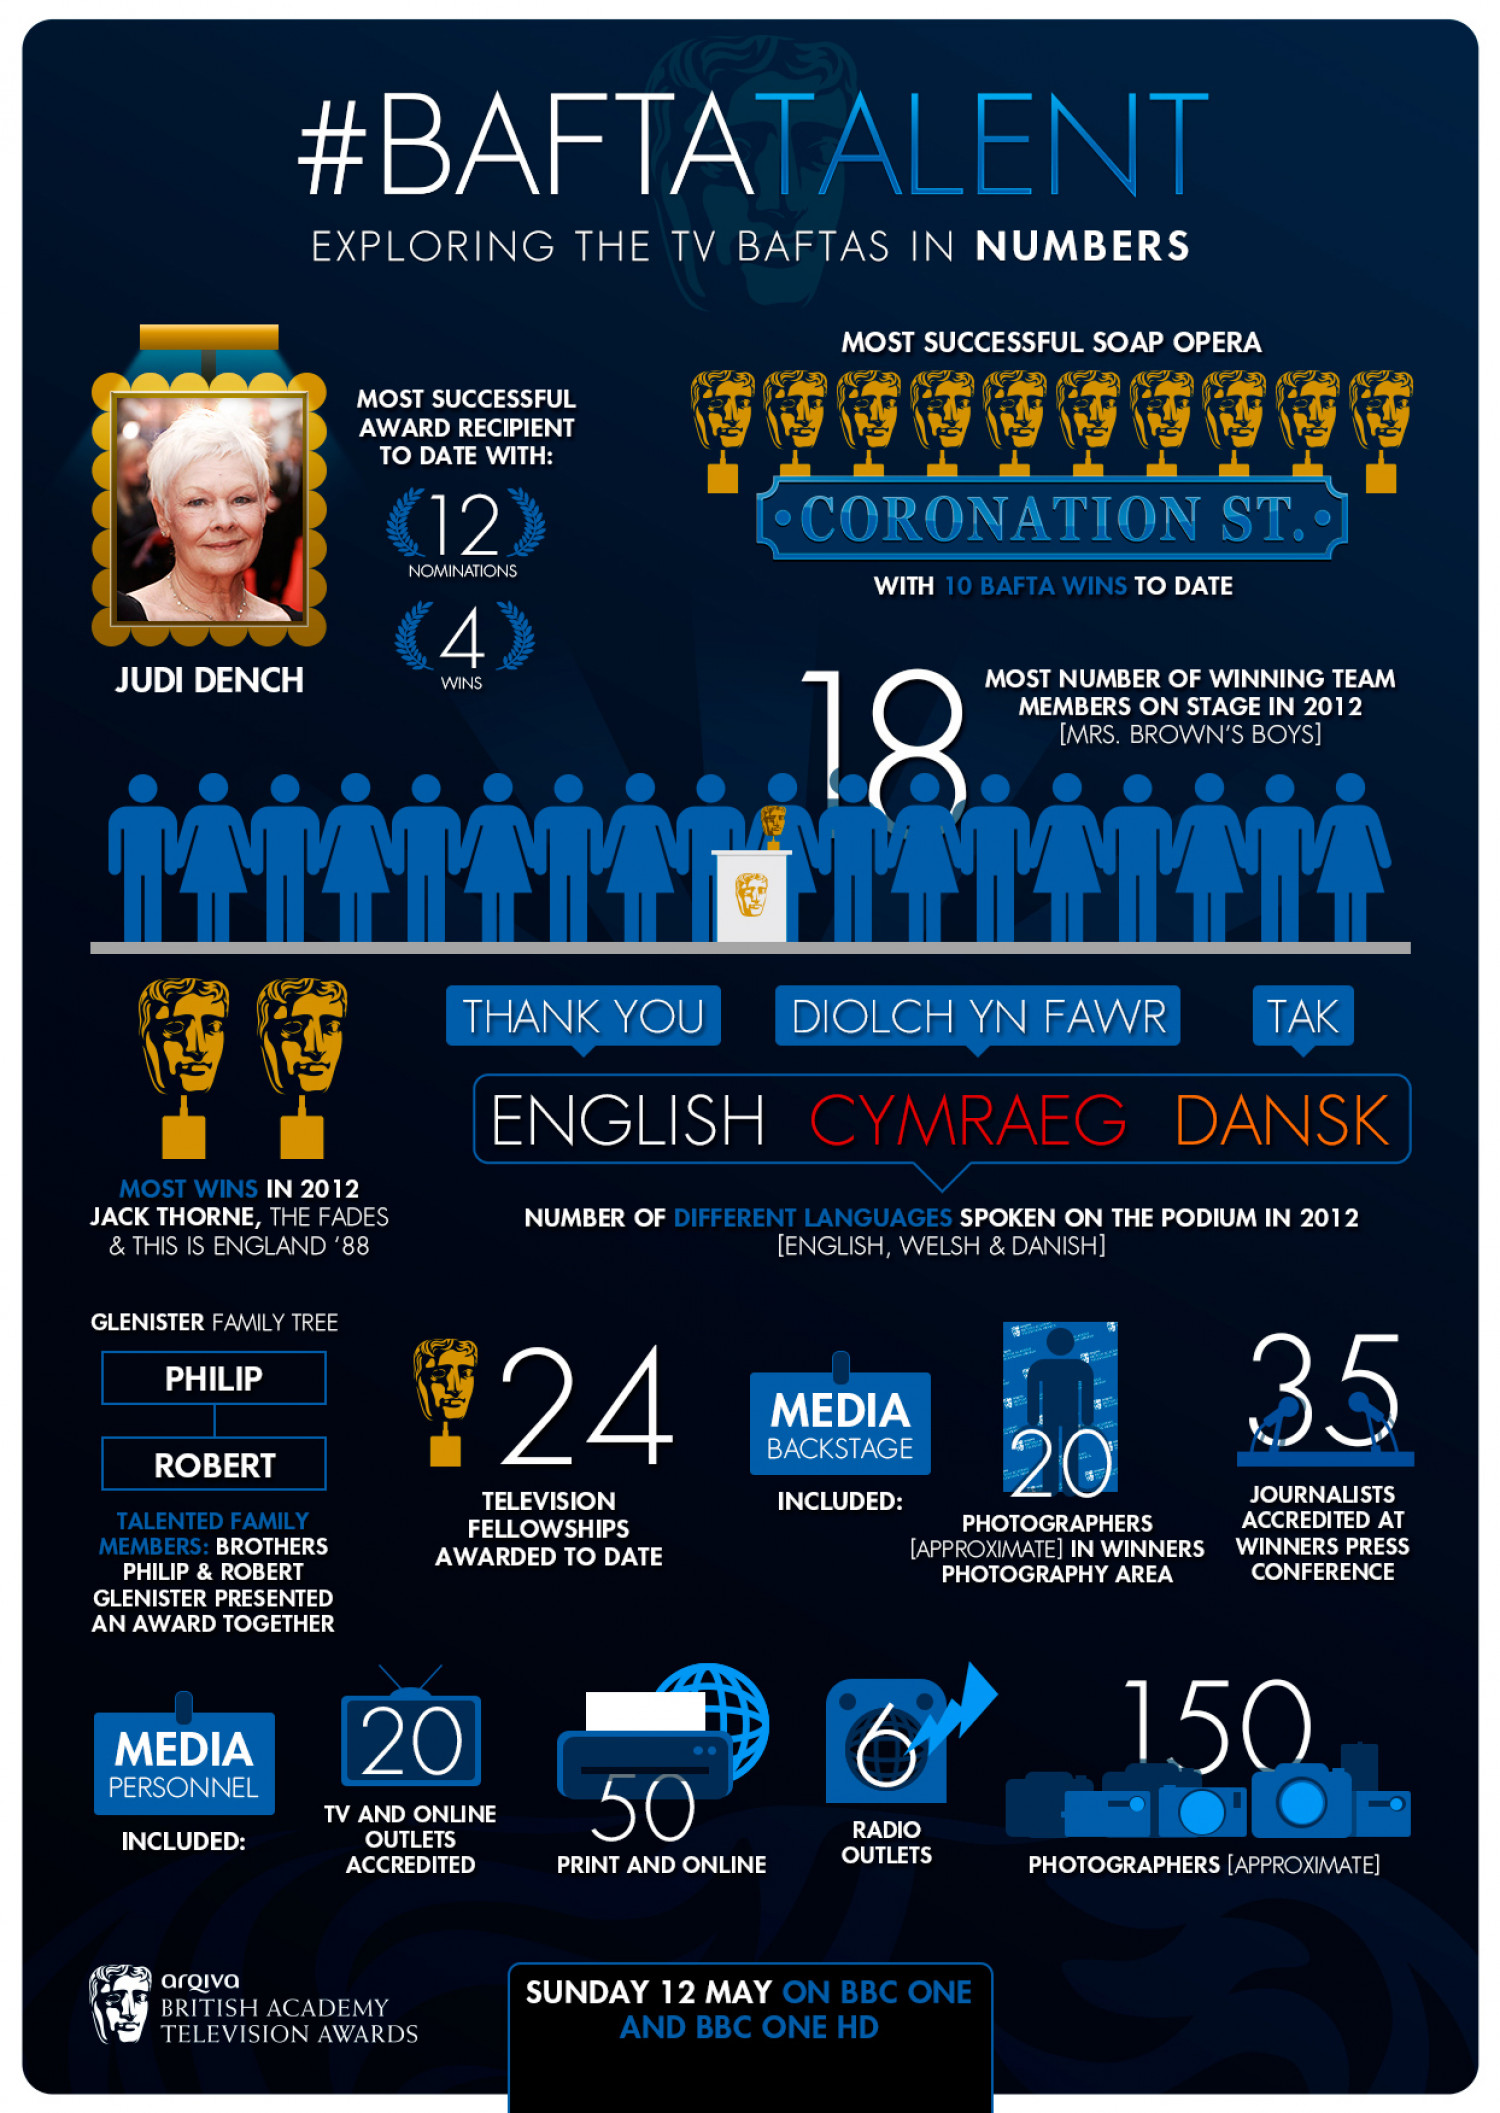 #BAFTATalent Infographic